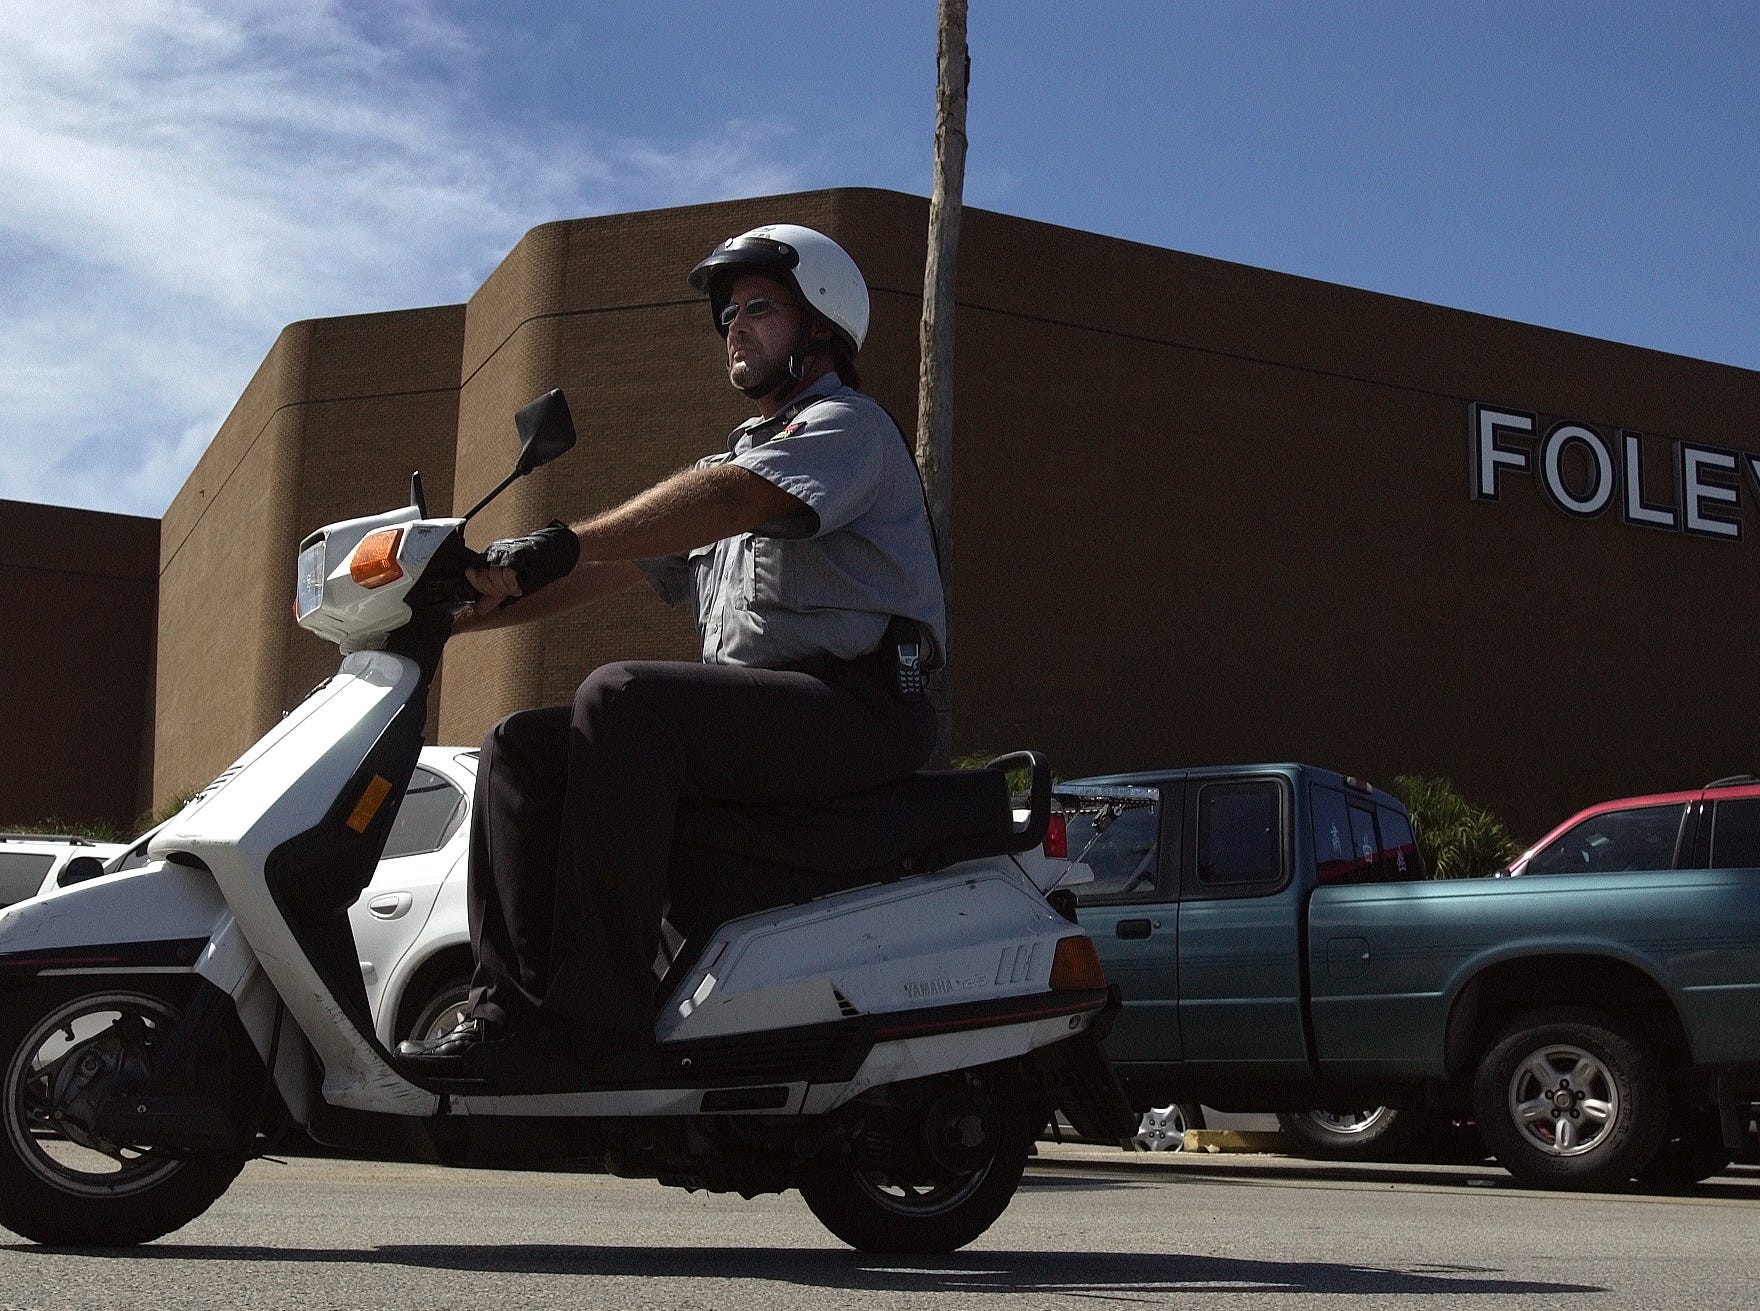 Padre Staples Mall security guard Ron Beem patrols the parking lot atop a moped on Aug. 25, 2003.  The mall uses a team of 13 people to monitor activity both inside and outside the building.